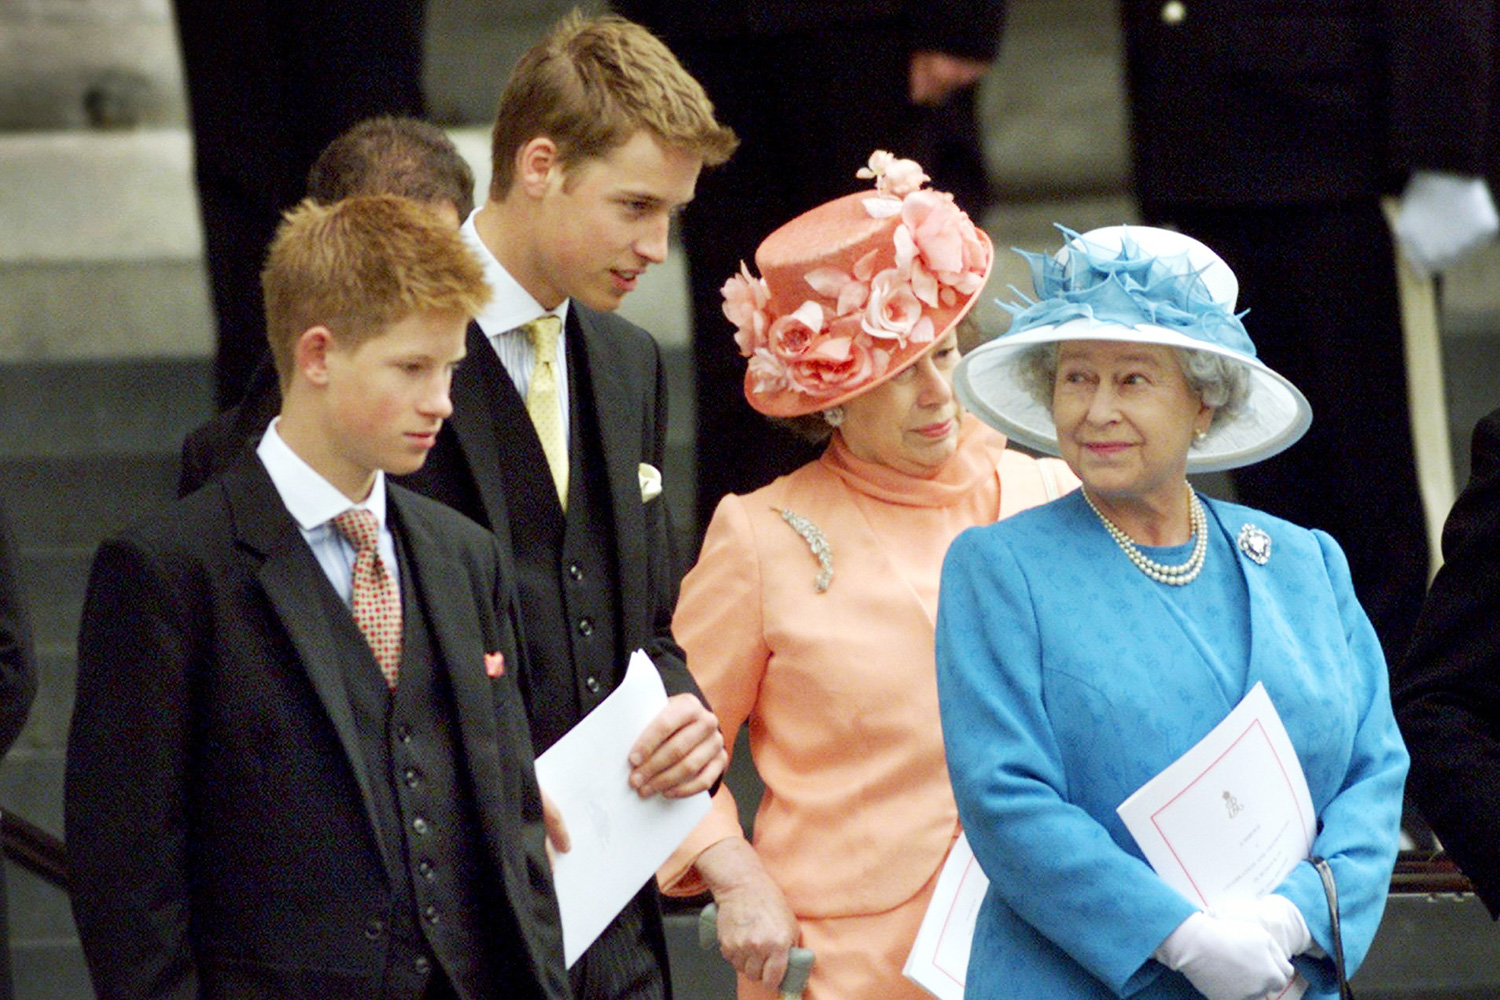 Britain's Queen Elizabeth (R) waits on the steps of St. Paul's Cathedral with her grandsons Prince Harry (L), Prince William (2nd L) and Princess Margaret (2nd R) after attending a national service of thanksgiving in celebration of The Queen Mother's forthcoming 100th birthday in London 11 July 2000